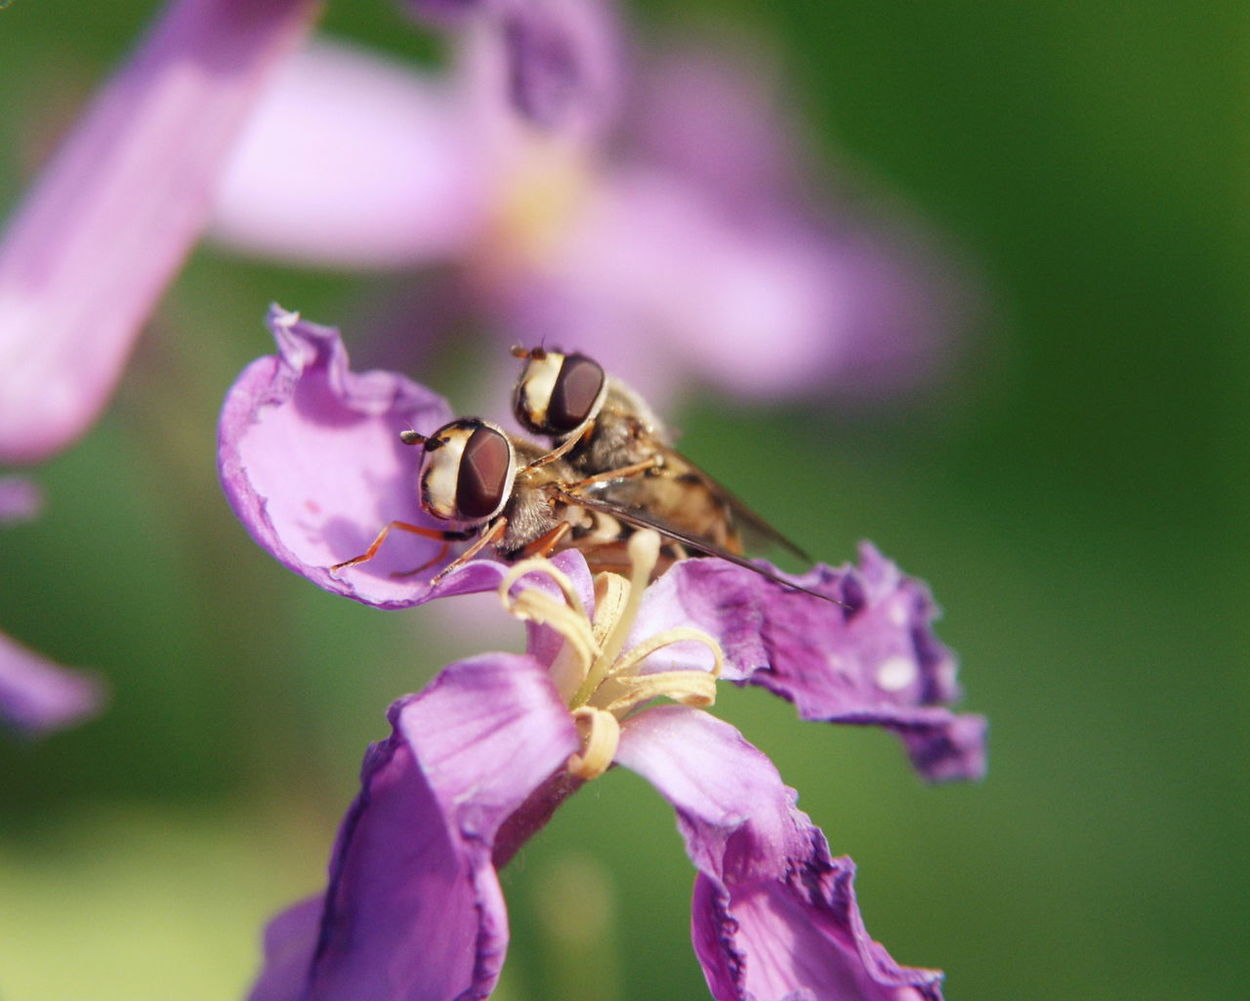 Eupeodes Bucculatus Flower Fly Hover Fly Insects  Nature Nature On Your Doorstep Orychophragmus Violaceus ショカツサイ ナミホシヒラタアブ